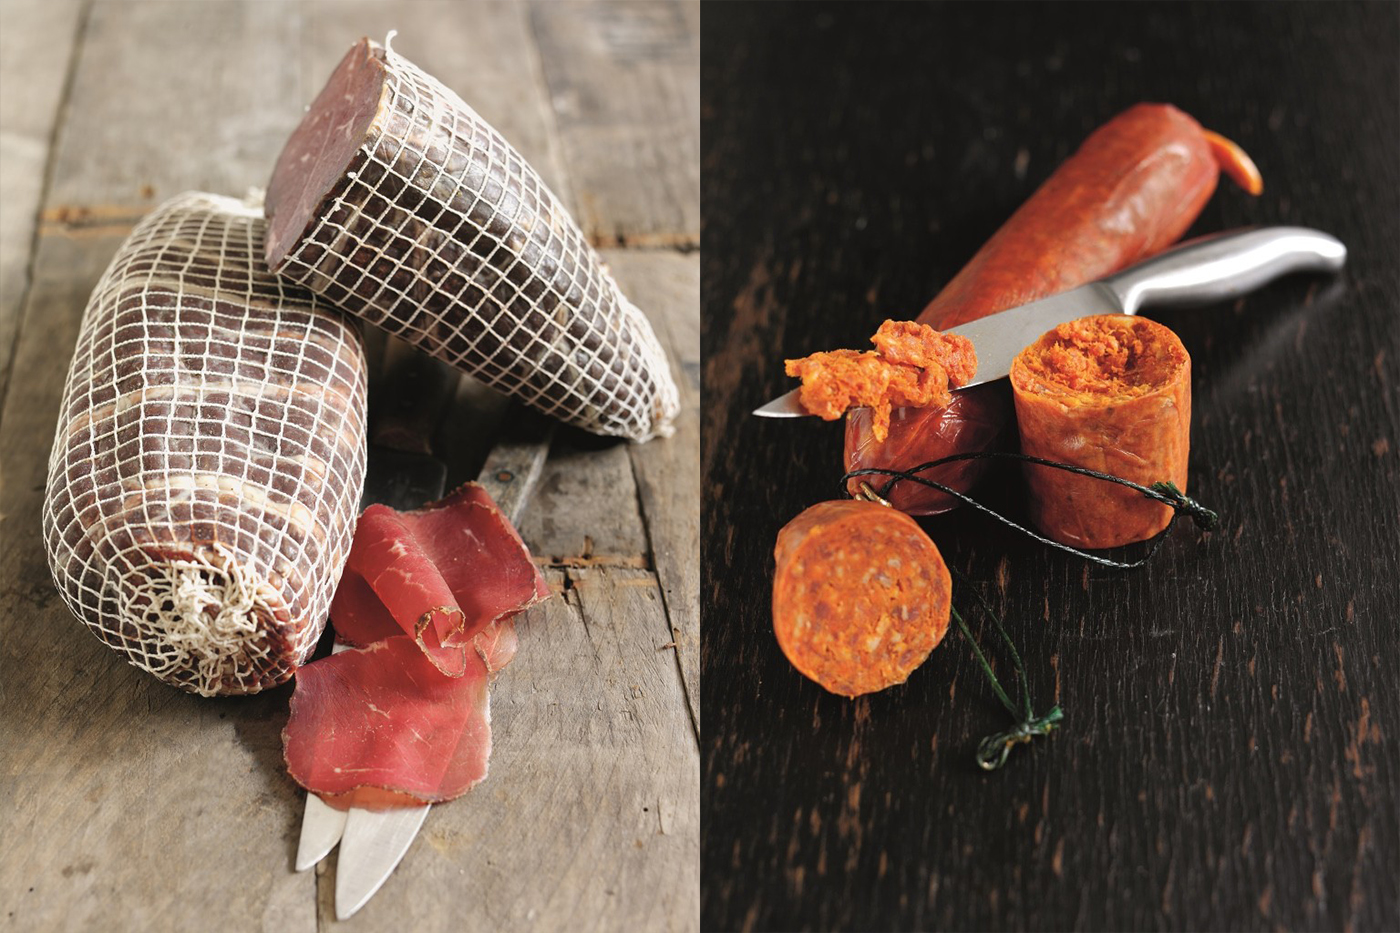 TREALY FARM - Award winning British charcuterie since 2005, based in South Wales, showcasing free-range meats.